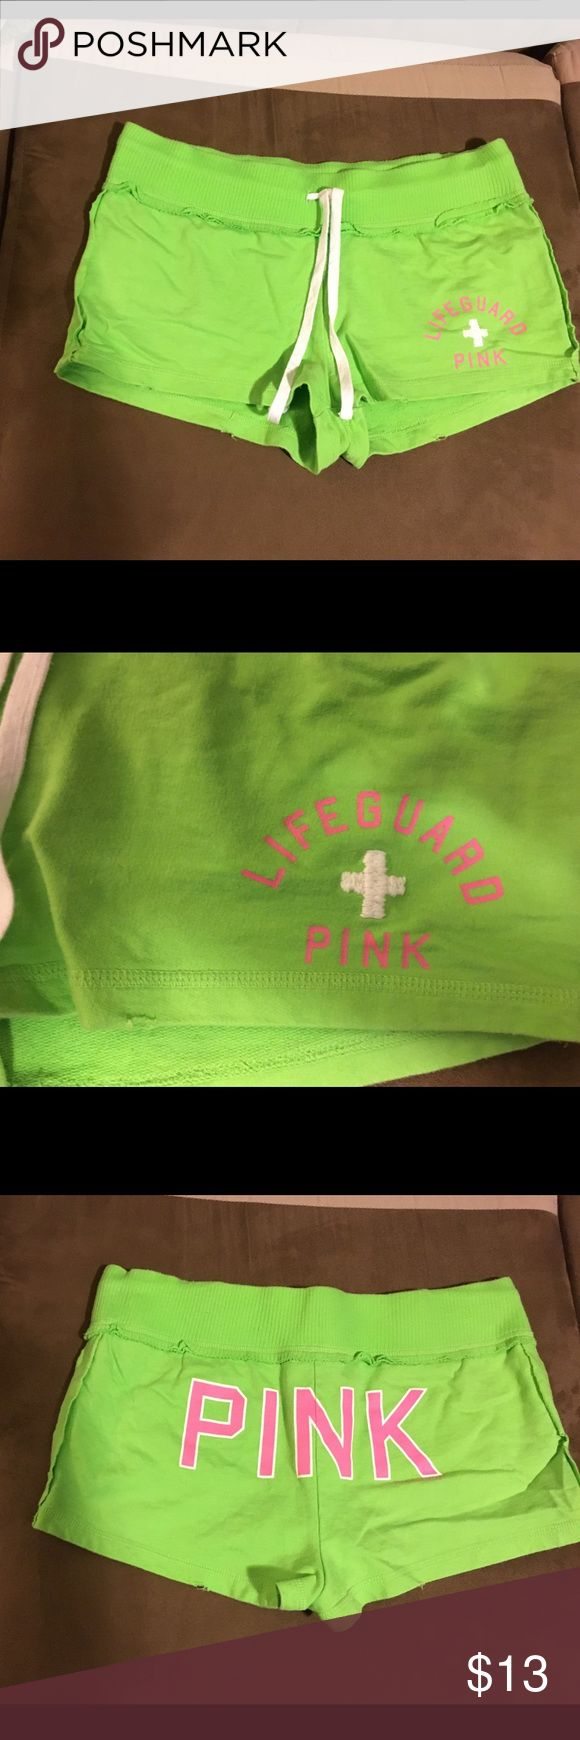 Pink Victoria's Secret Lime Green Shorts Small Lime Green with Pink and White Lifeguard print on front and Pink and White Pink printed on butt. These are size small with a drawstring waist.  The waistband edge is sticking up in a couple of places and there is a tiny bit of fray on the legs as pictured but came like this from store.  Have only been worn a few times and are in good condition from a smoke free home. 100% cotton. PINK Victoria's Secret Shorts